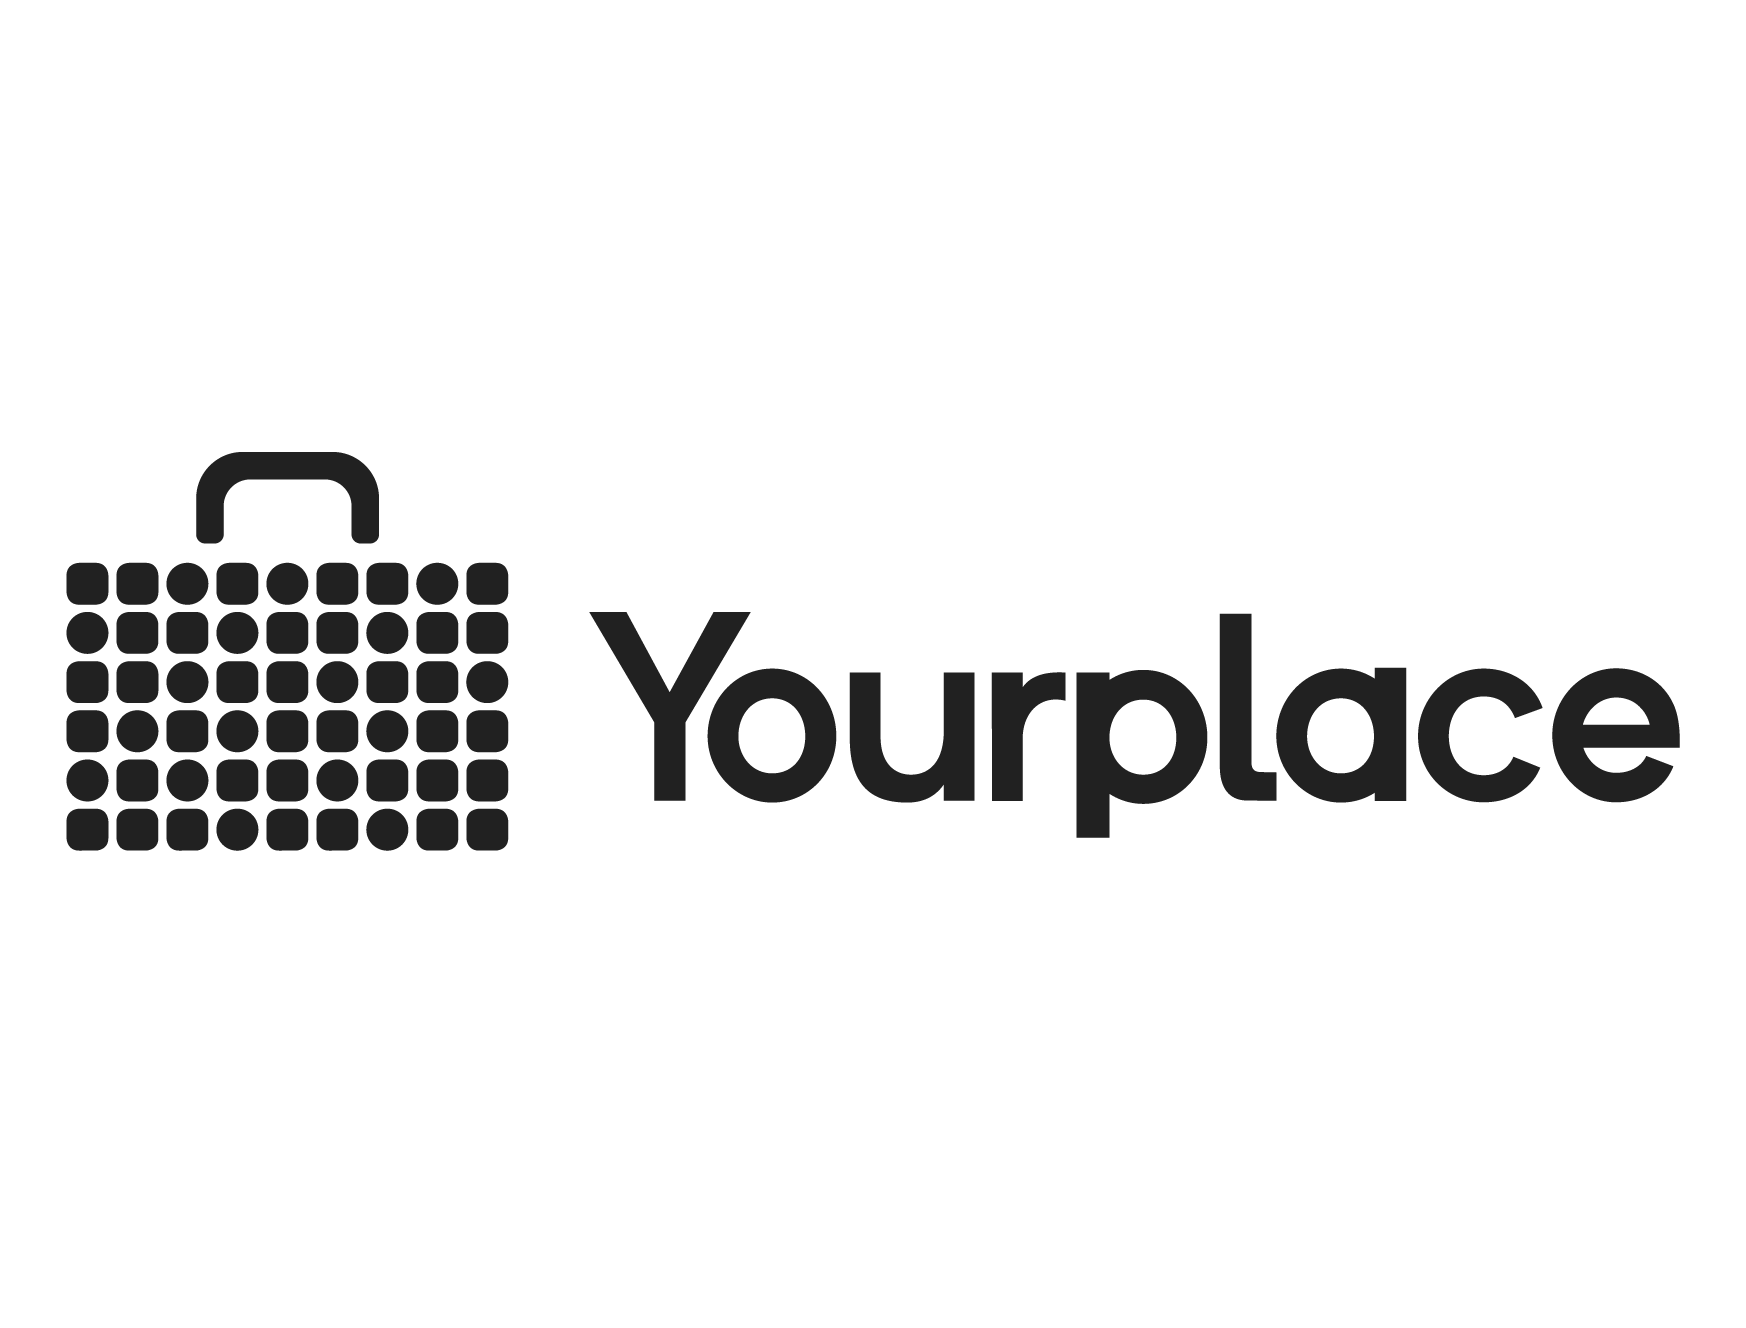 Yourplace